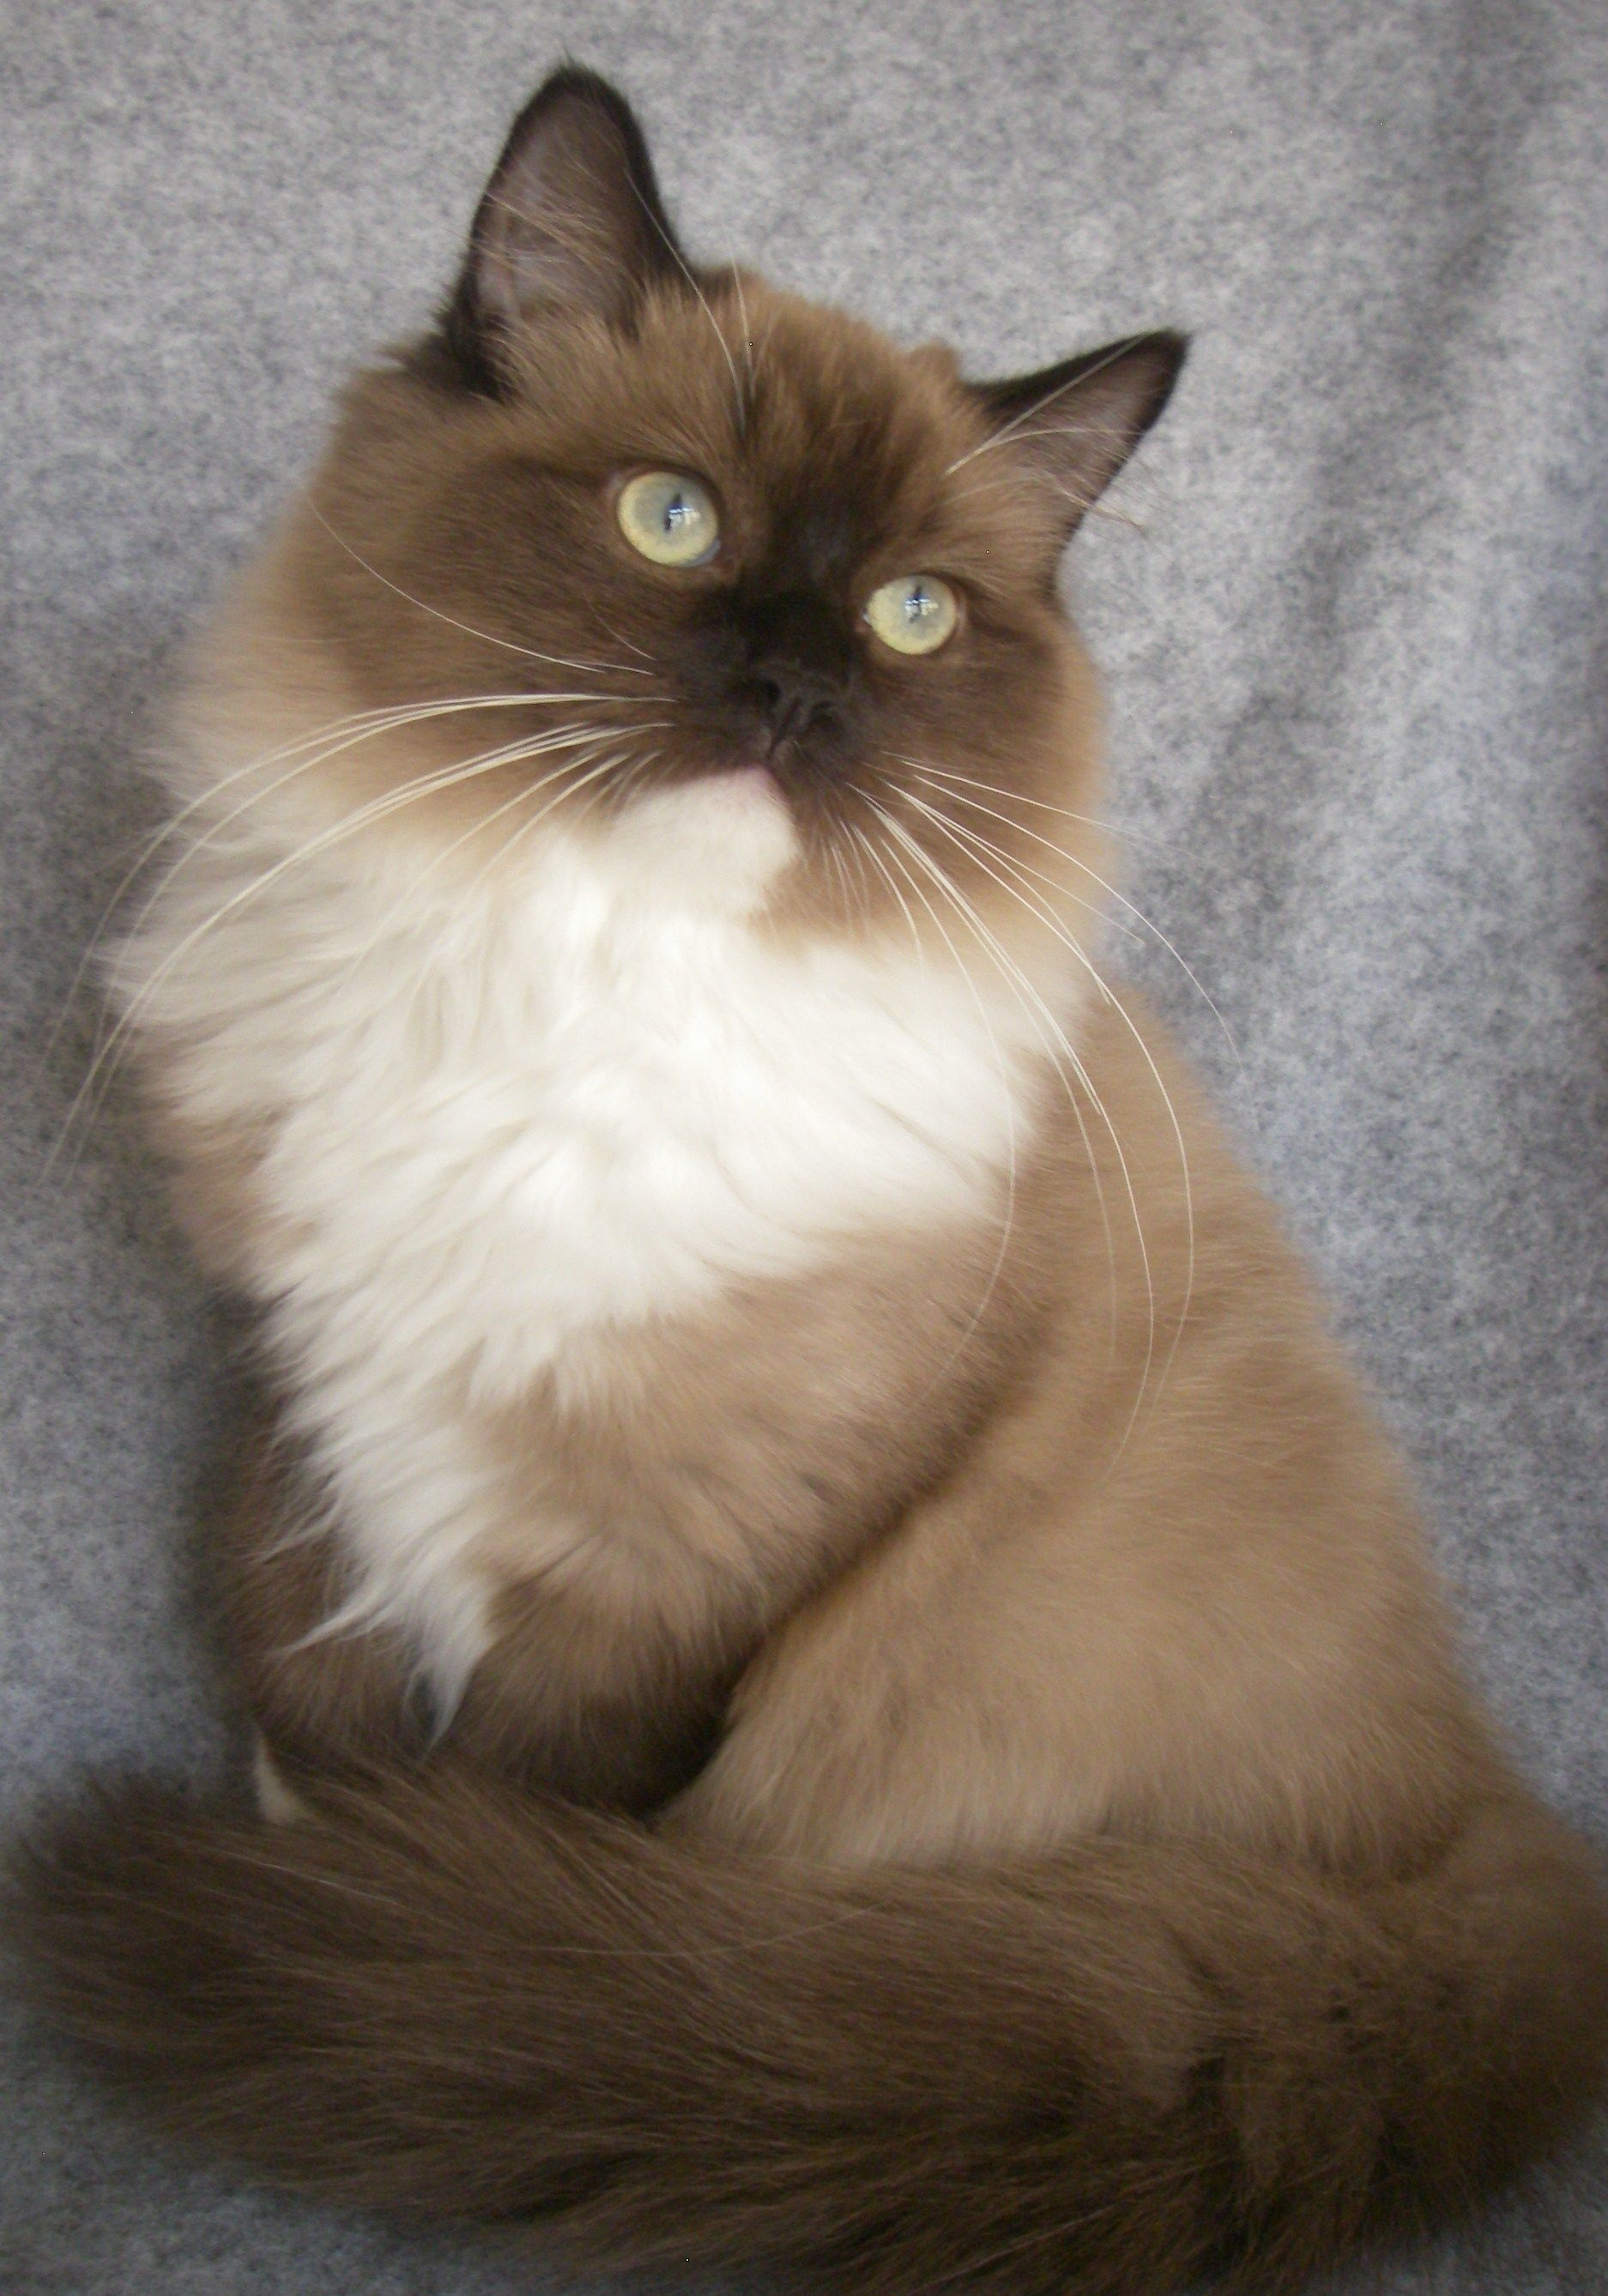 Cats Make Great Pets In Your Home More Details Can Be Found By Clicking On The Image Catsfunny In 2020 Cute Cats Pretty Cats Ragdoll Kitten